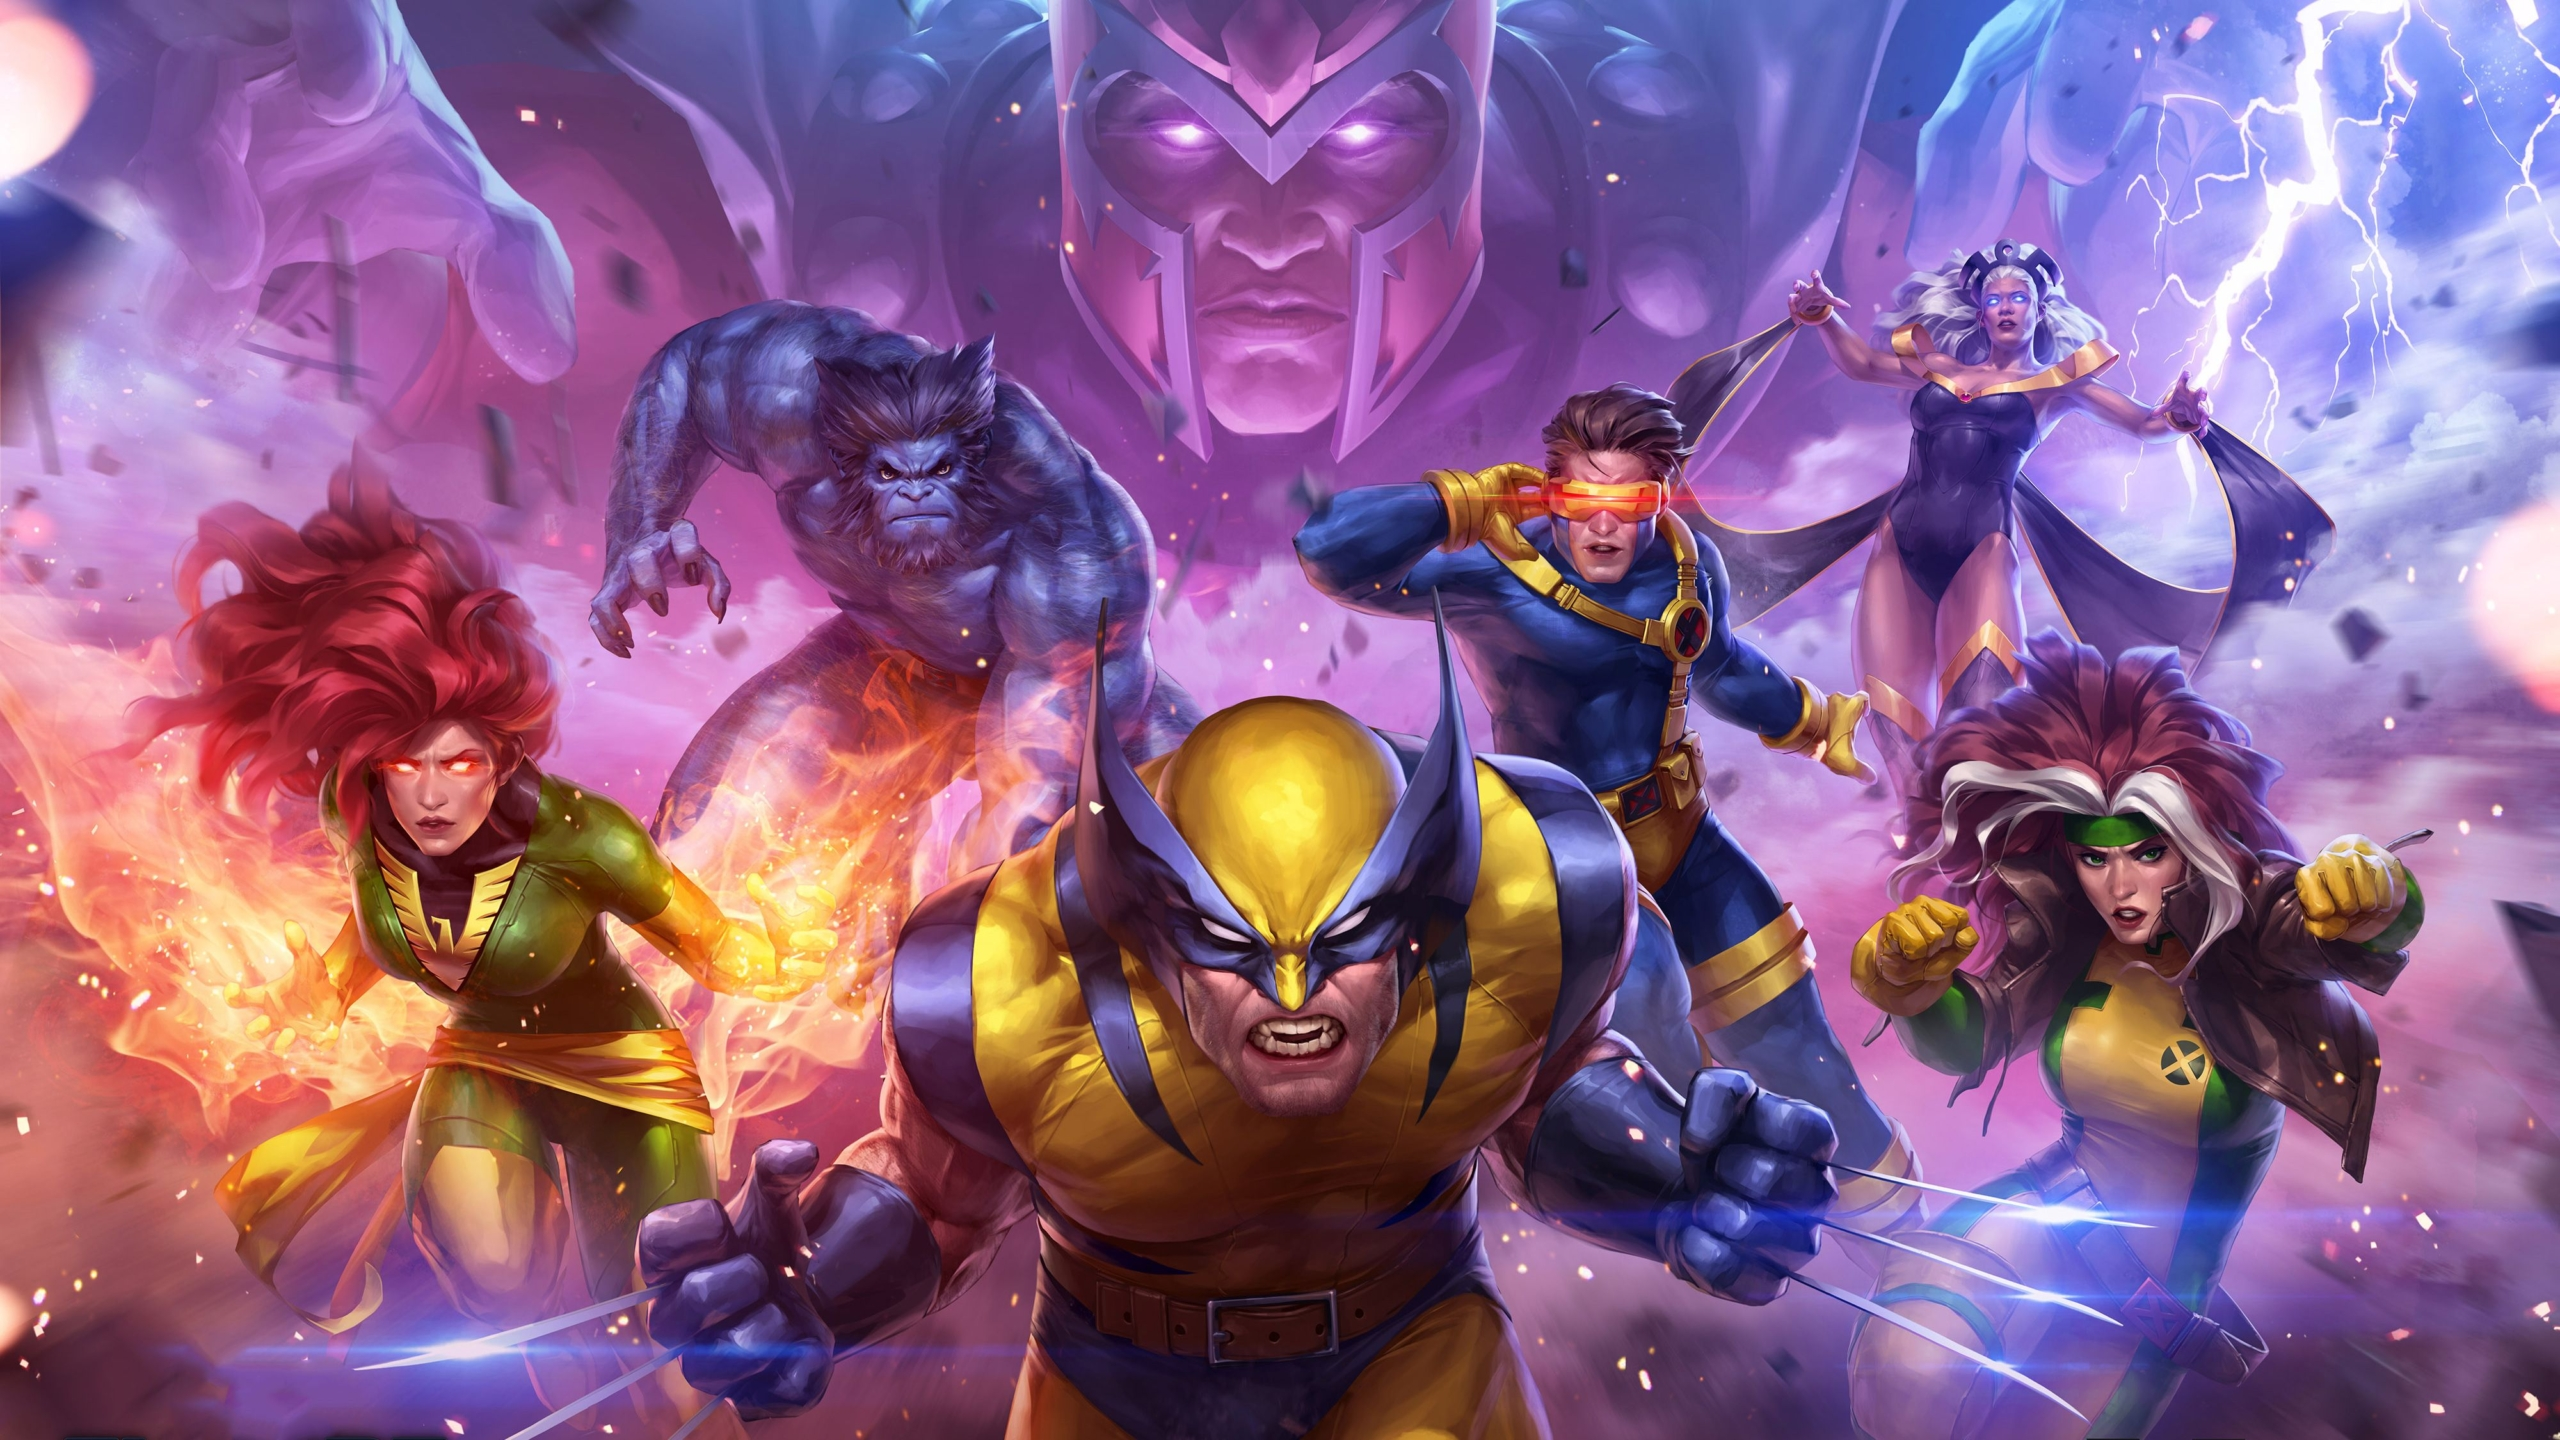 X Men Picture designs – Be Your Own Childhood Hero